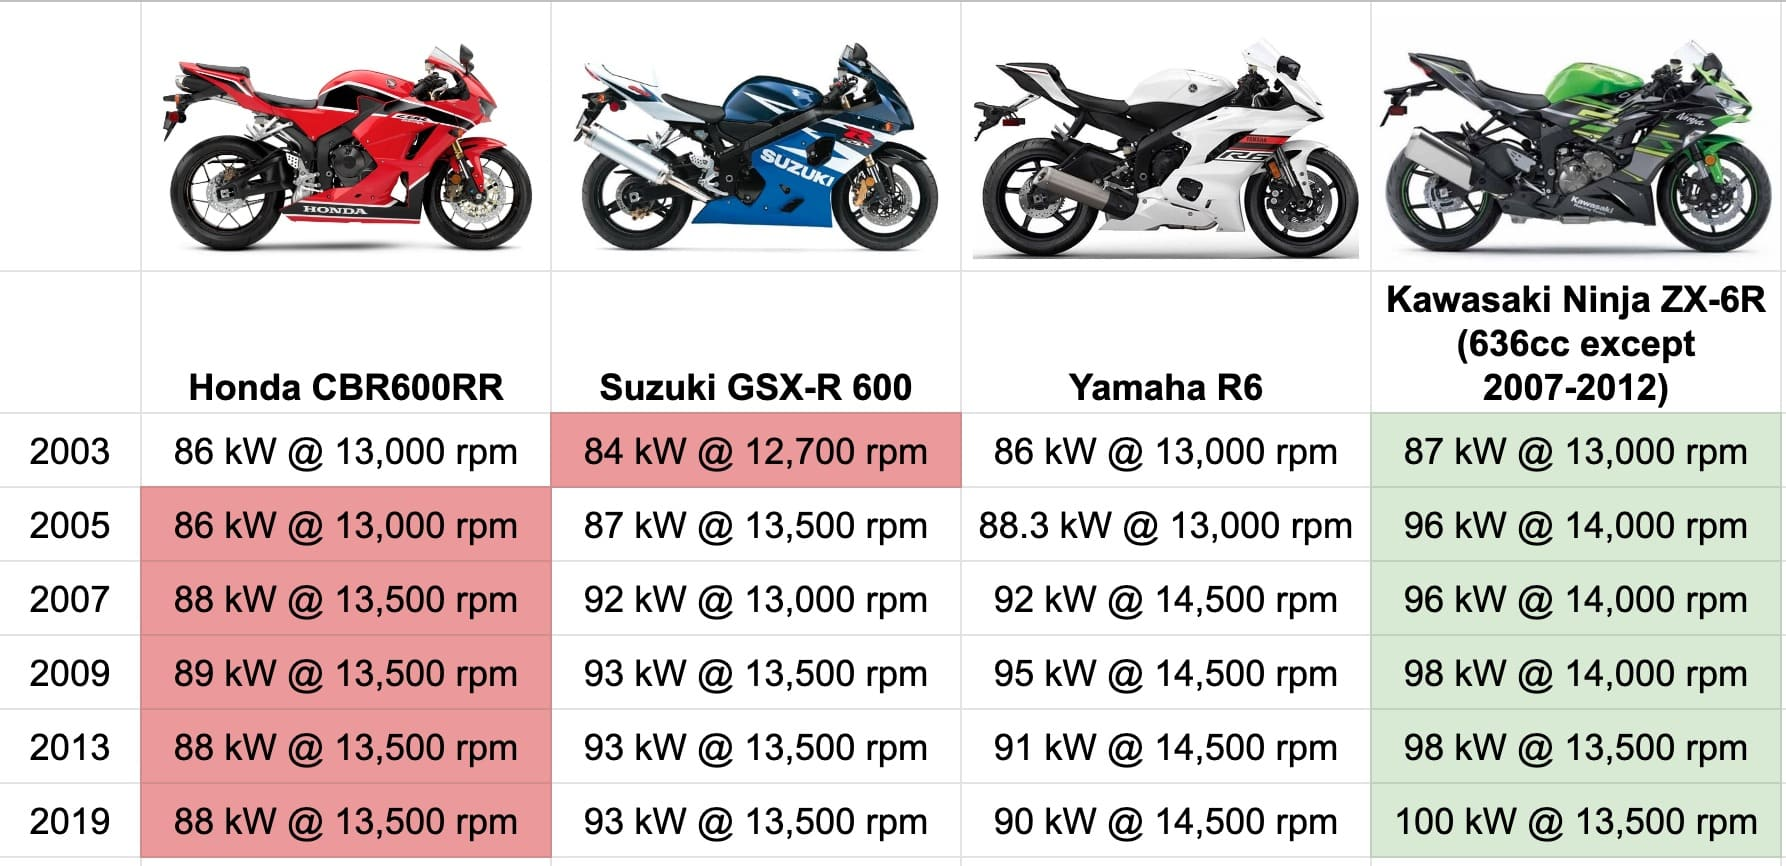 The supersport 600cc sport class specs compared across the years — CBR600RR, GSX-R 600, Yamaha R6, and Kawasaki ZX-6R power and torque